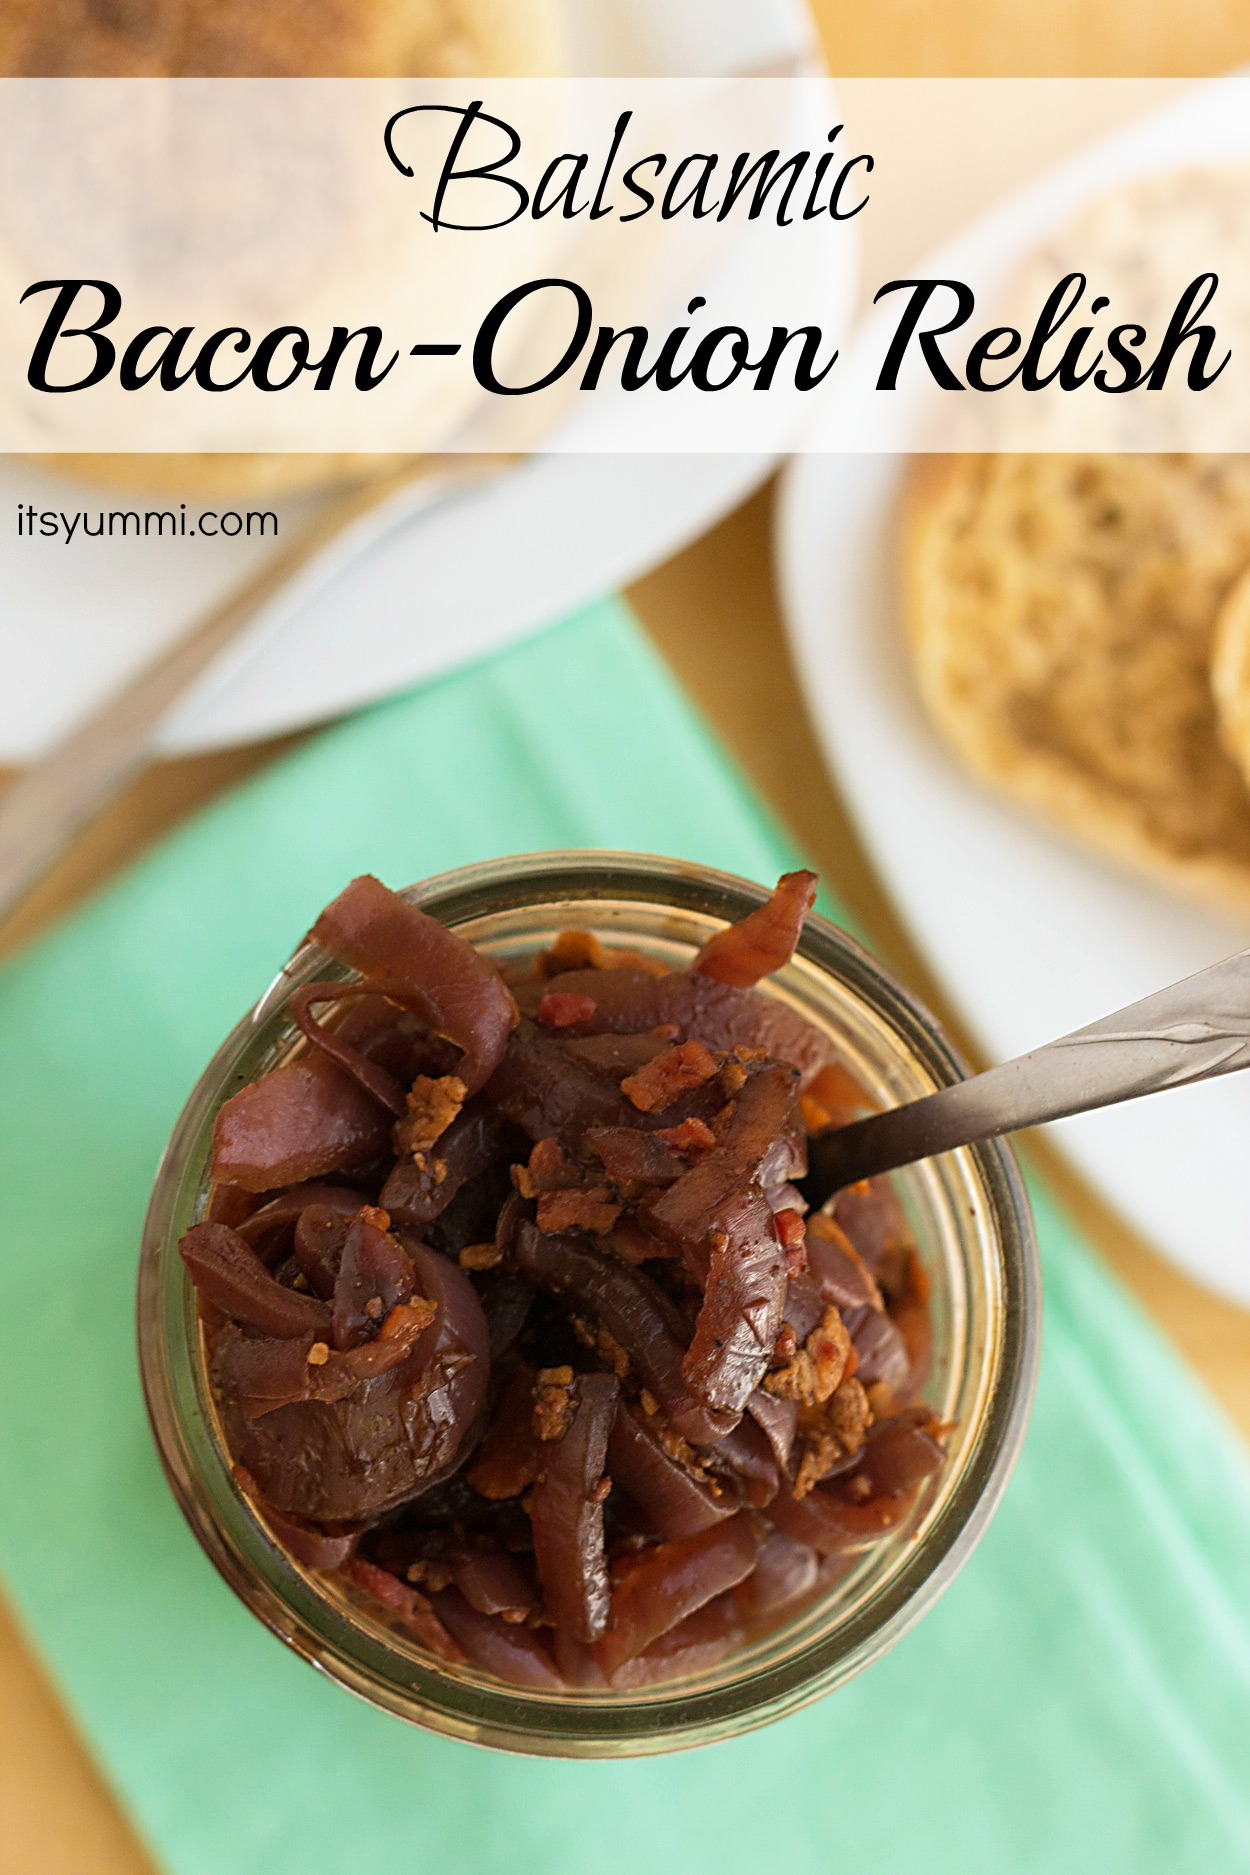 Balsamic Bacon Onion Relish for #baconmonth from ItsYummi.com